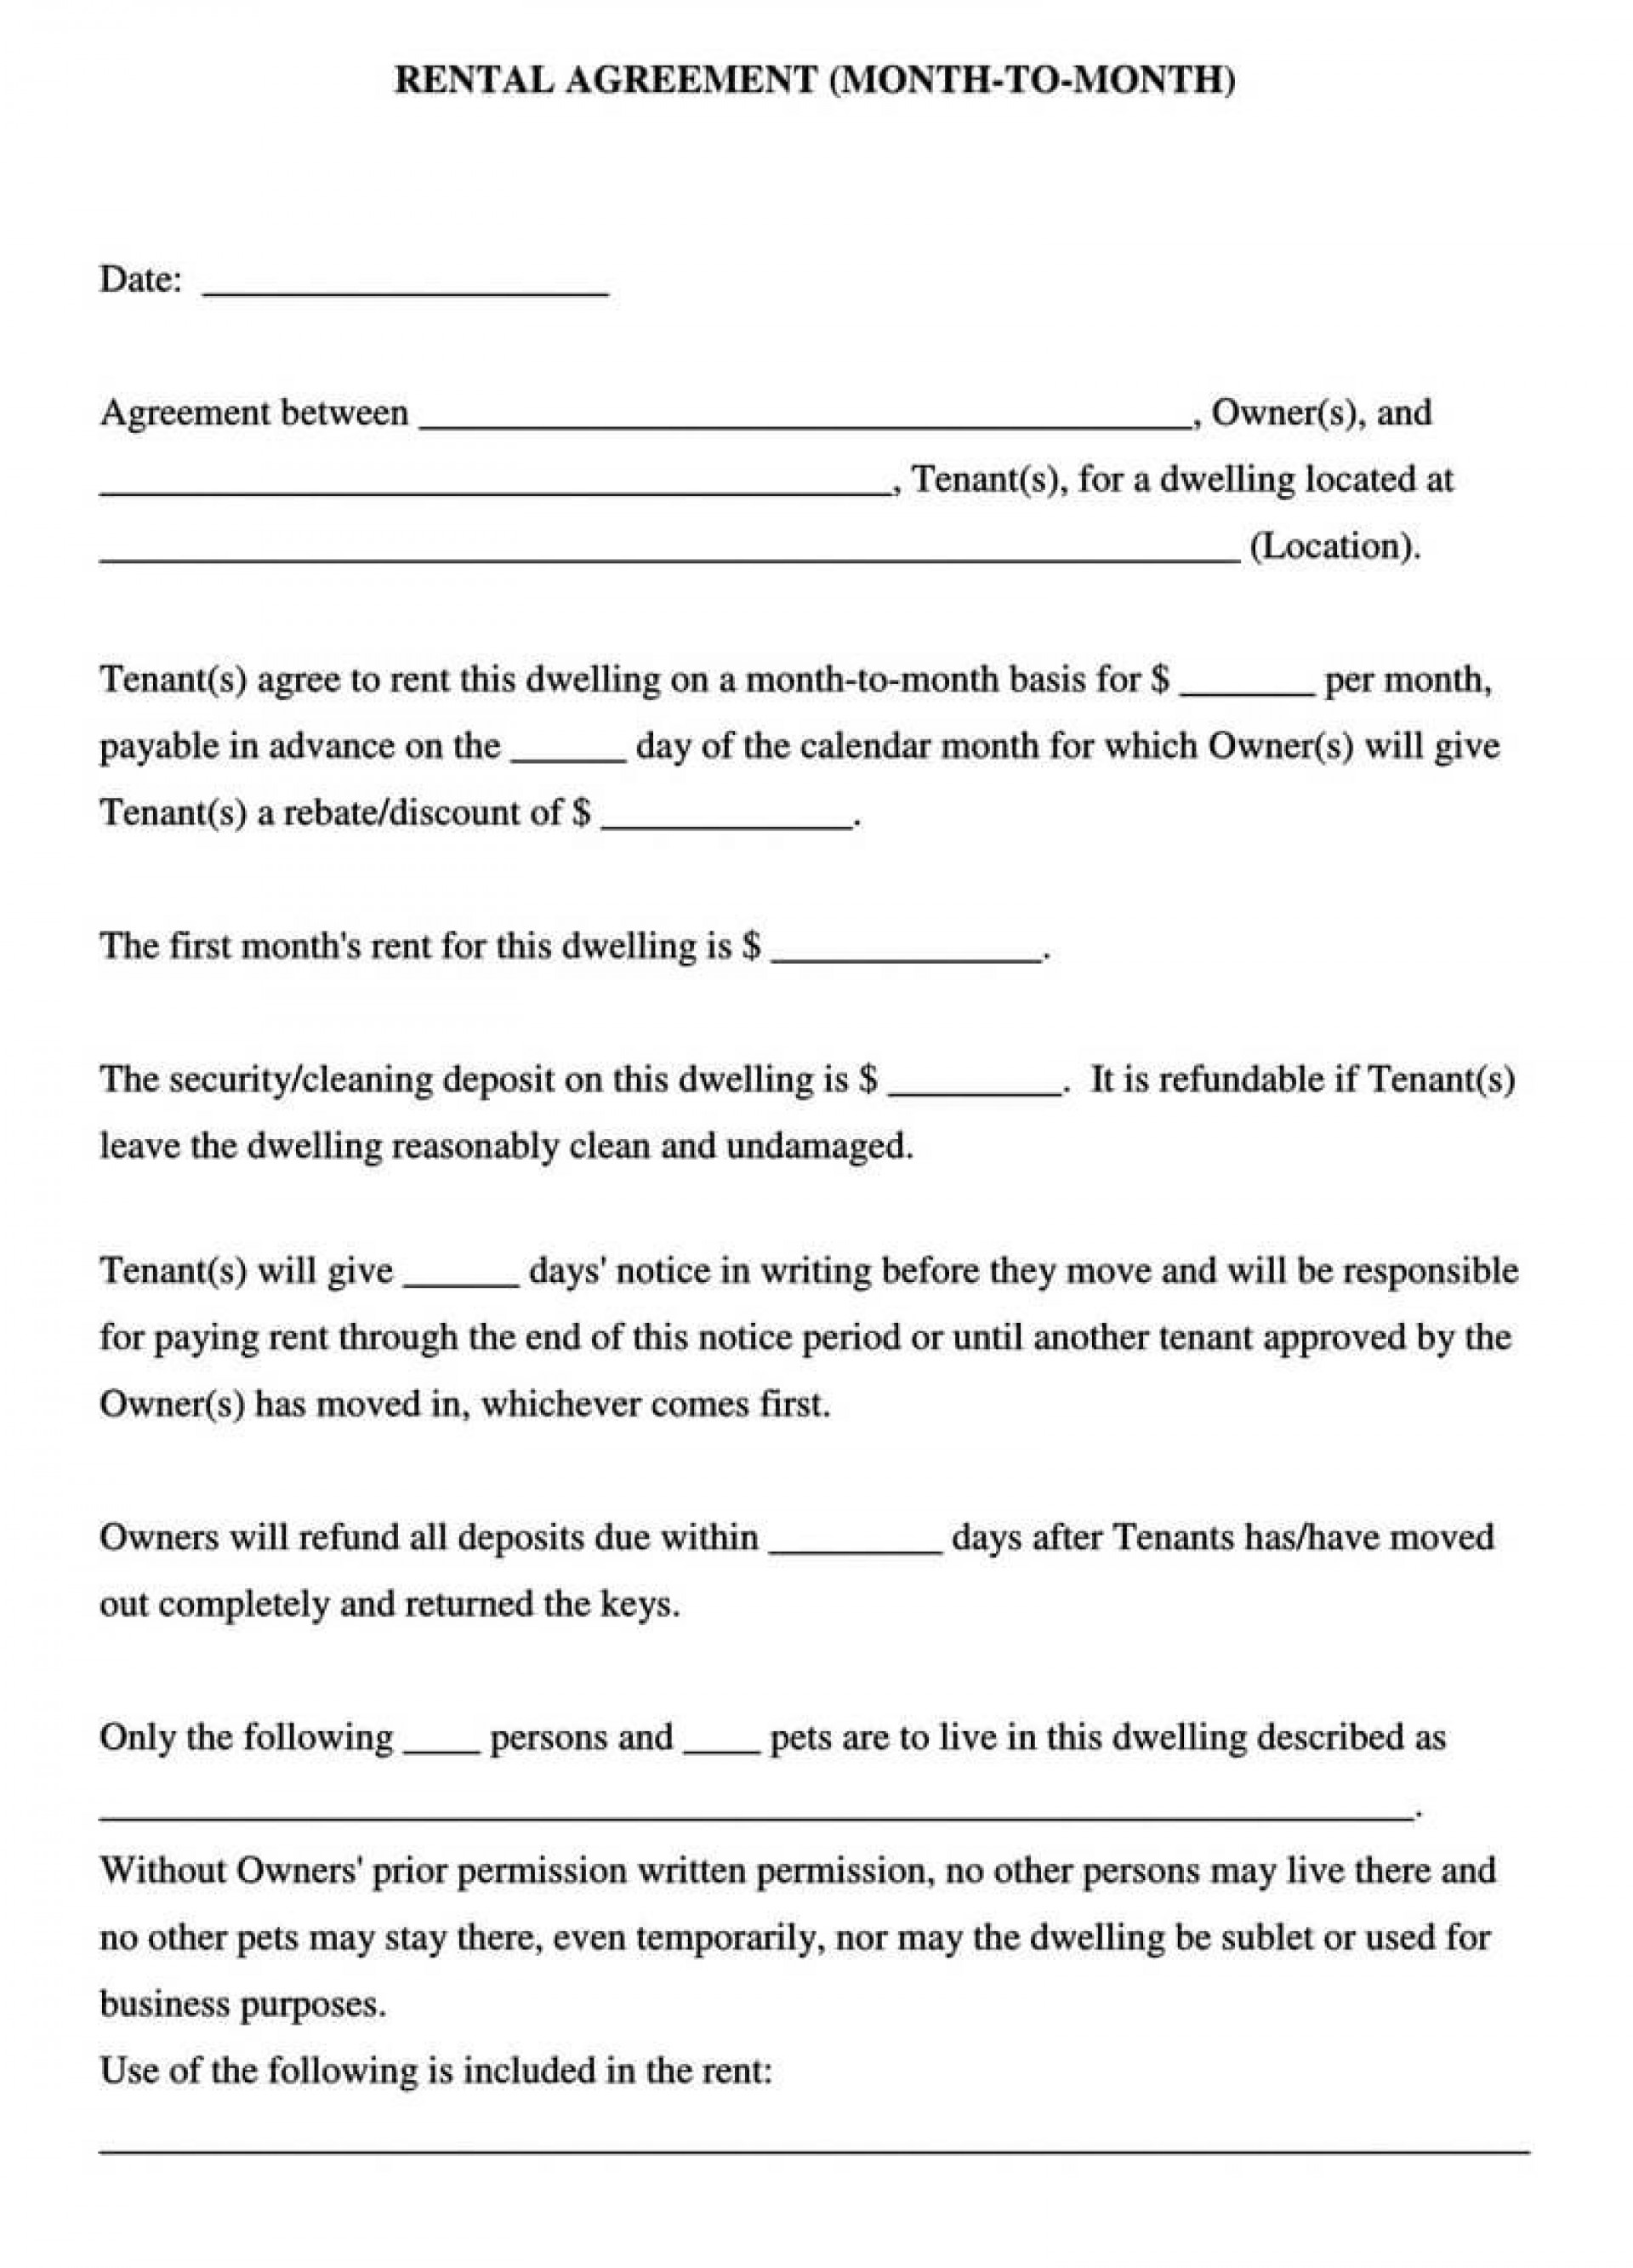 006 Magnificent Rental Contract Template Free Download Picture  Agreement Sample Room Form1920